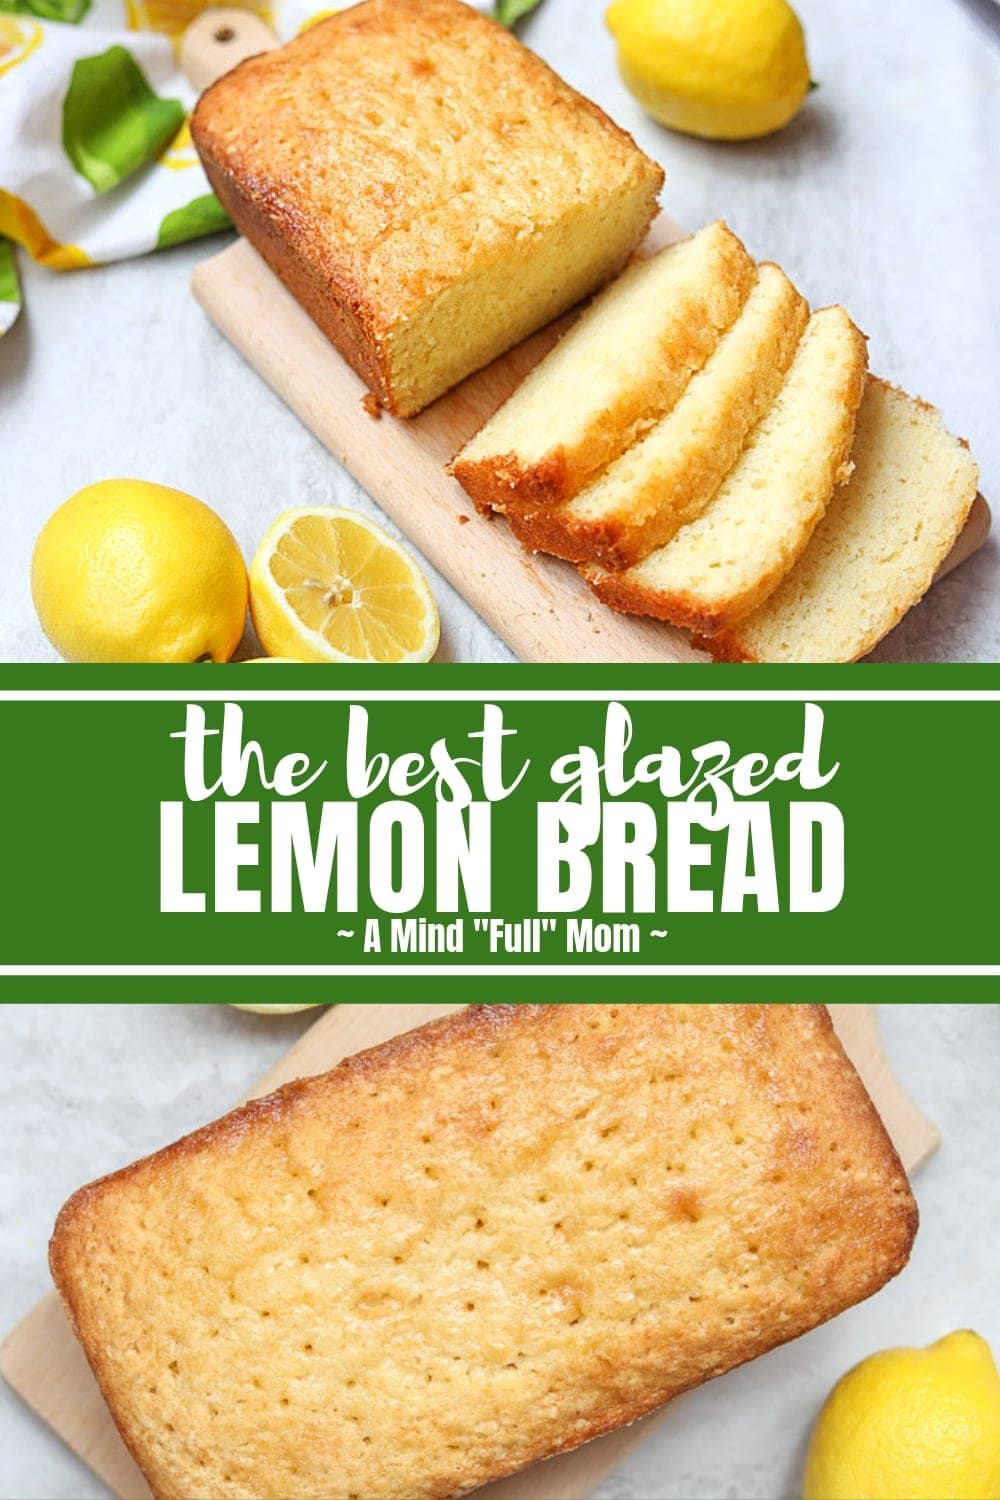 This is the BEST recipe for Lemon Bread Ever that comes straight from my great, great grandma's recipe box. This lemon bread is tender, moist, and full of bright lemon flavor and finished with a sweet glaze.